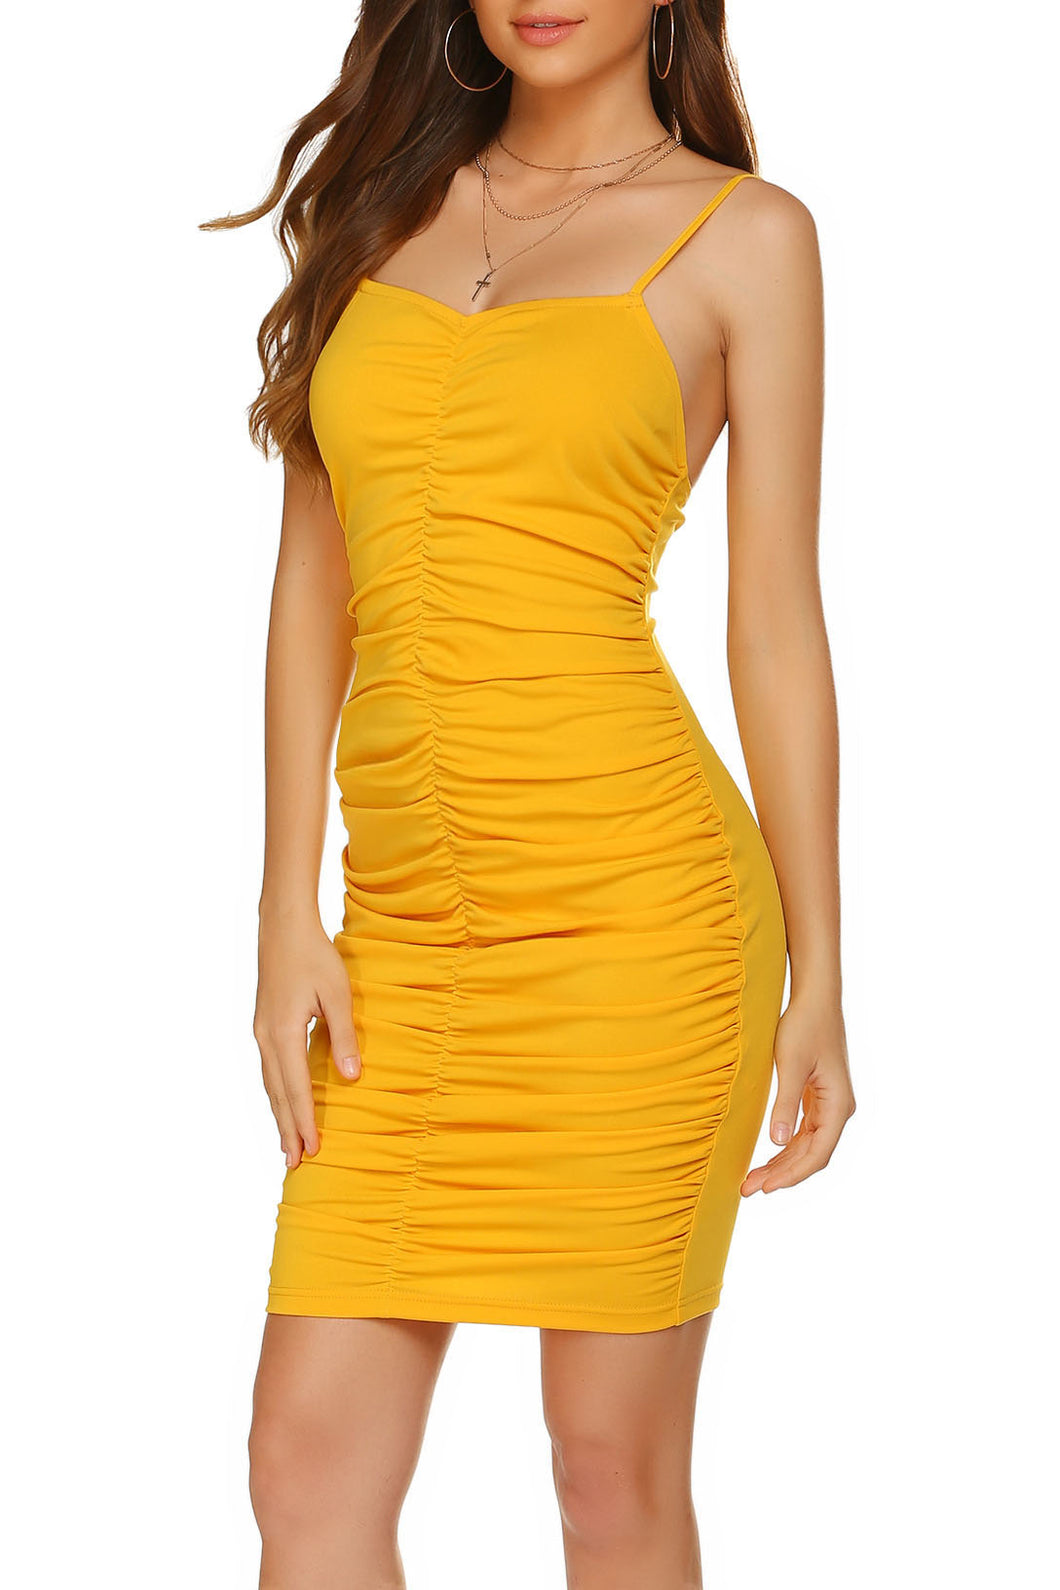 Maternity Fashion Solid Color Sleeveless Bodycon Dress